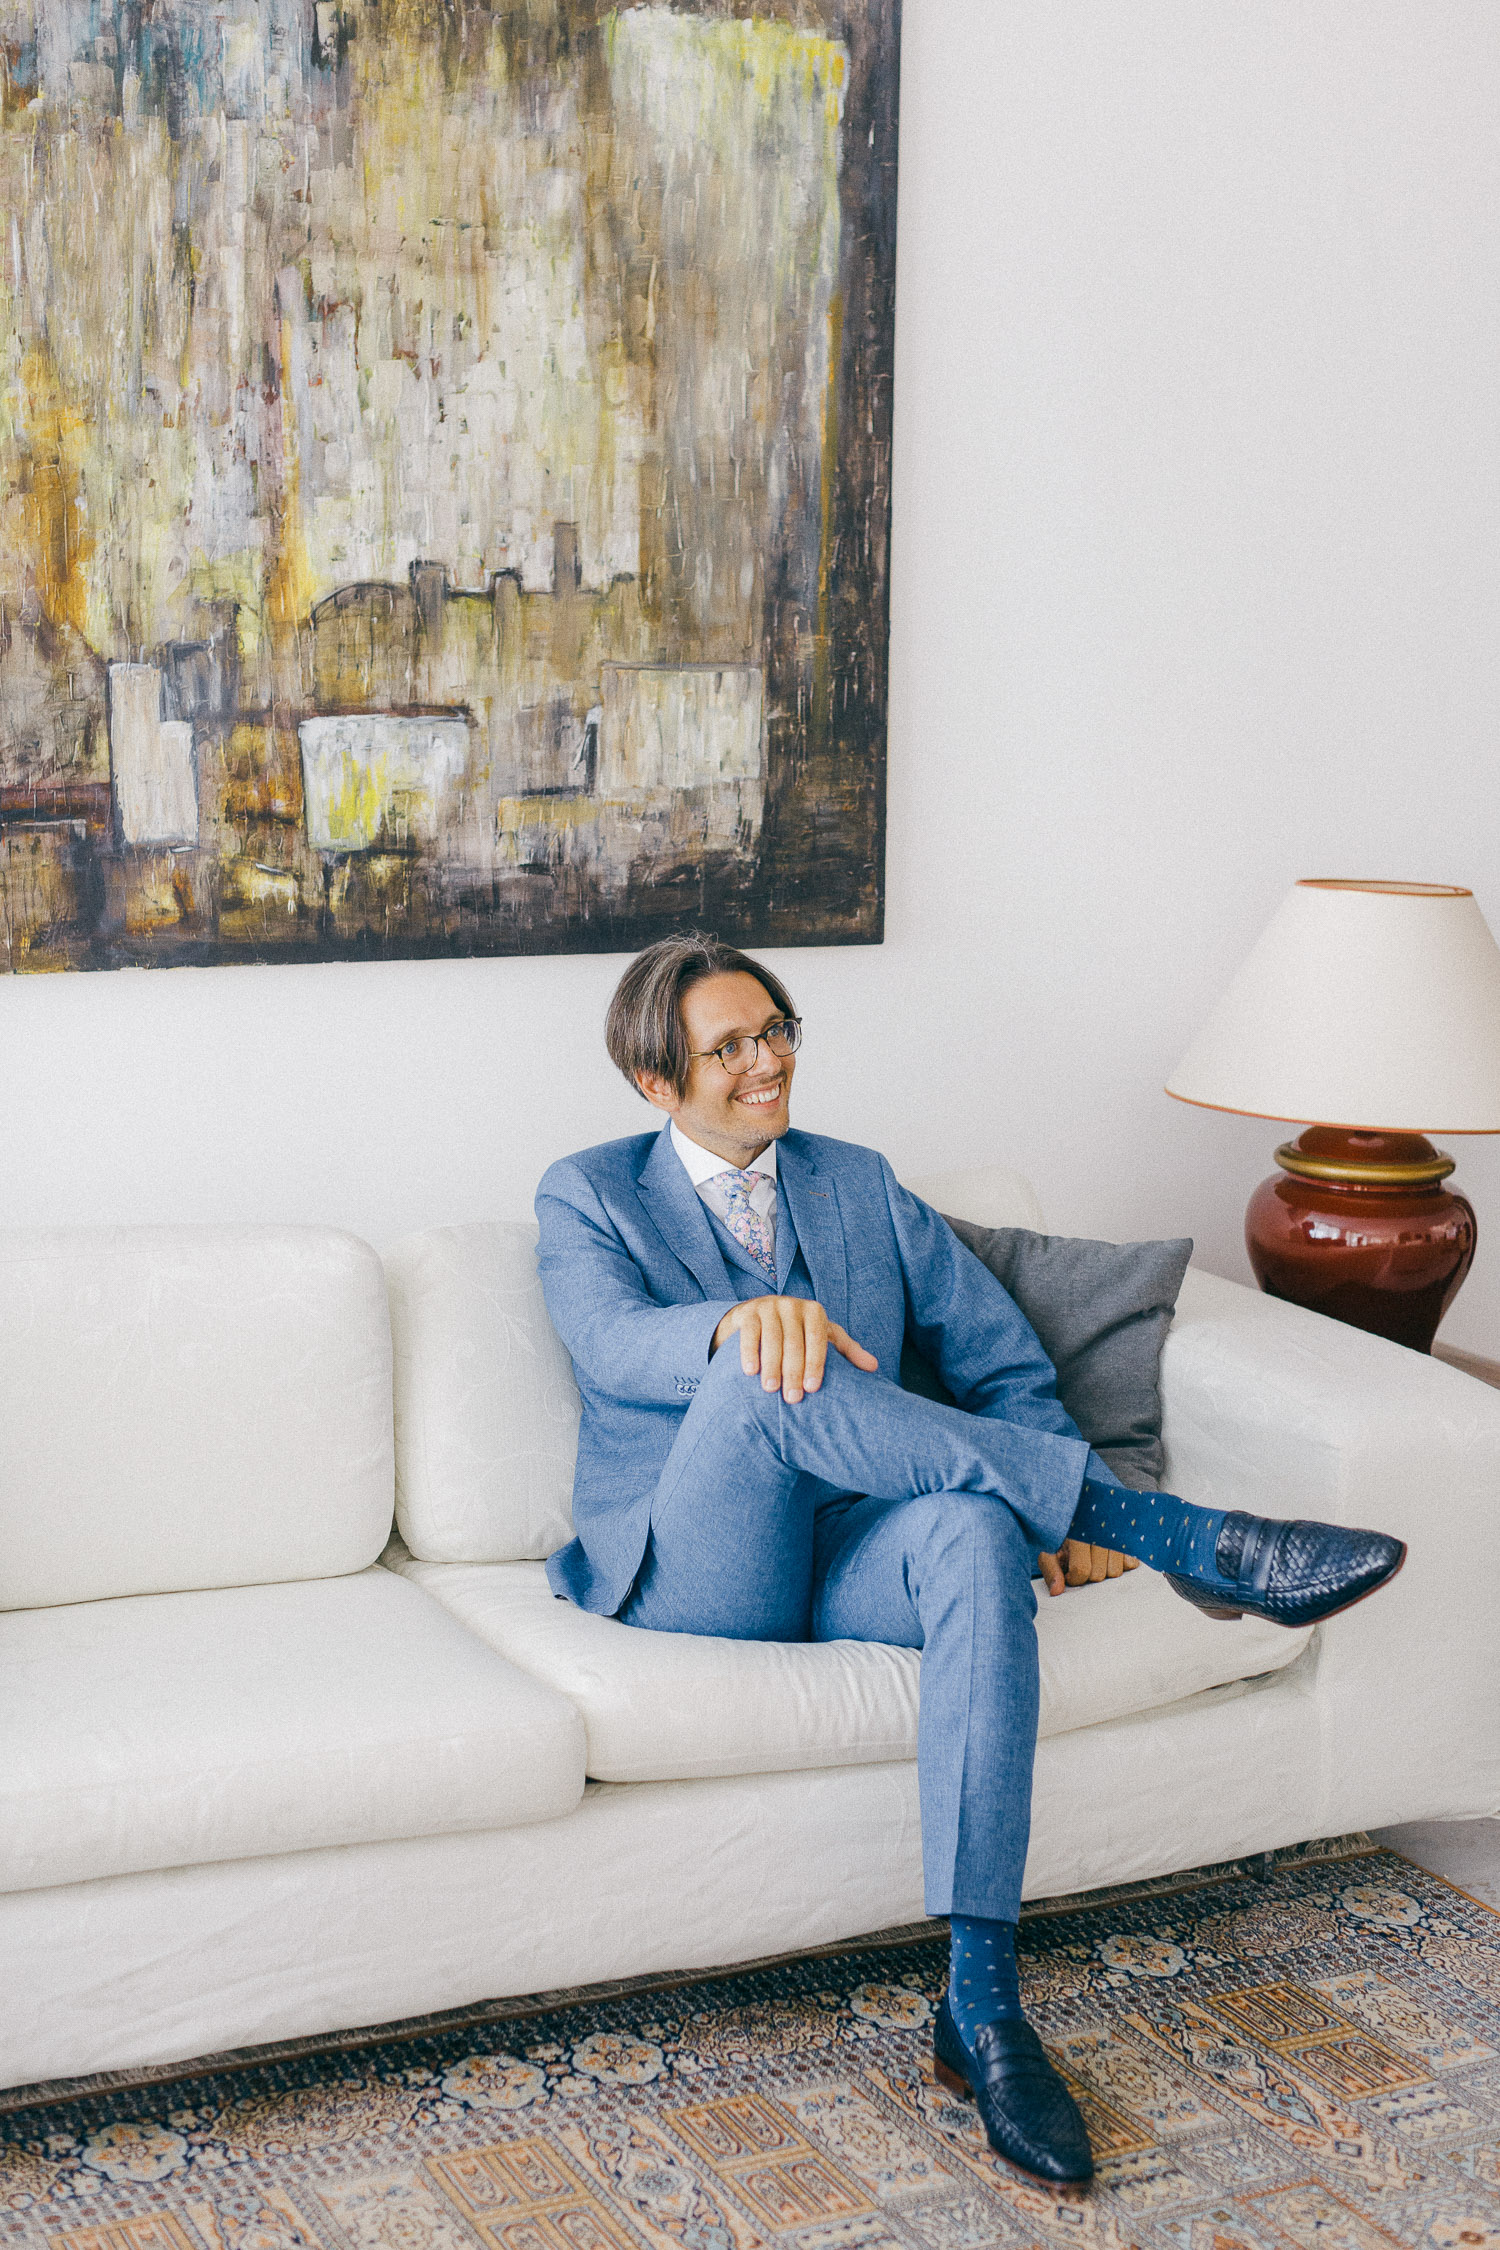 Stylish groom on a total blue attire enjoying some moment at a luxury living room